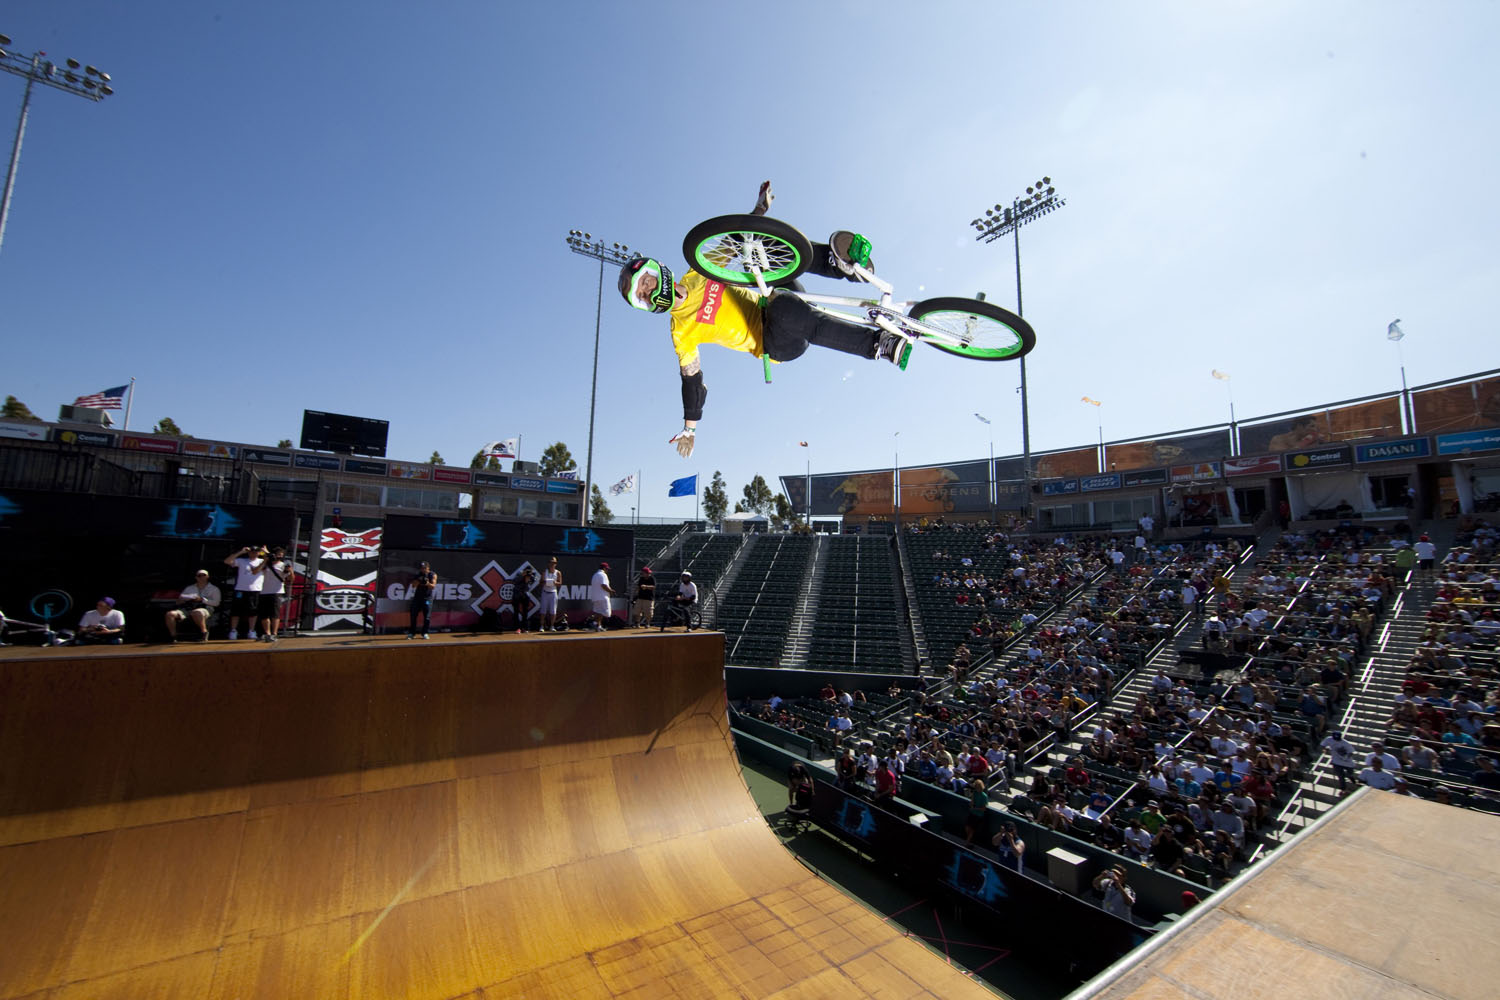 Jamie Bestwick competes in BMX Vert at Summer X Games 15 at Home Depot Center on August 1, 2009 in Carson, California.